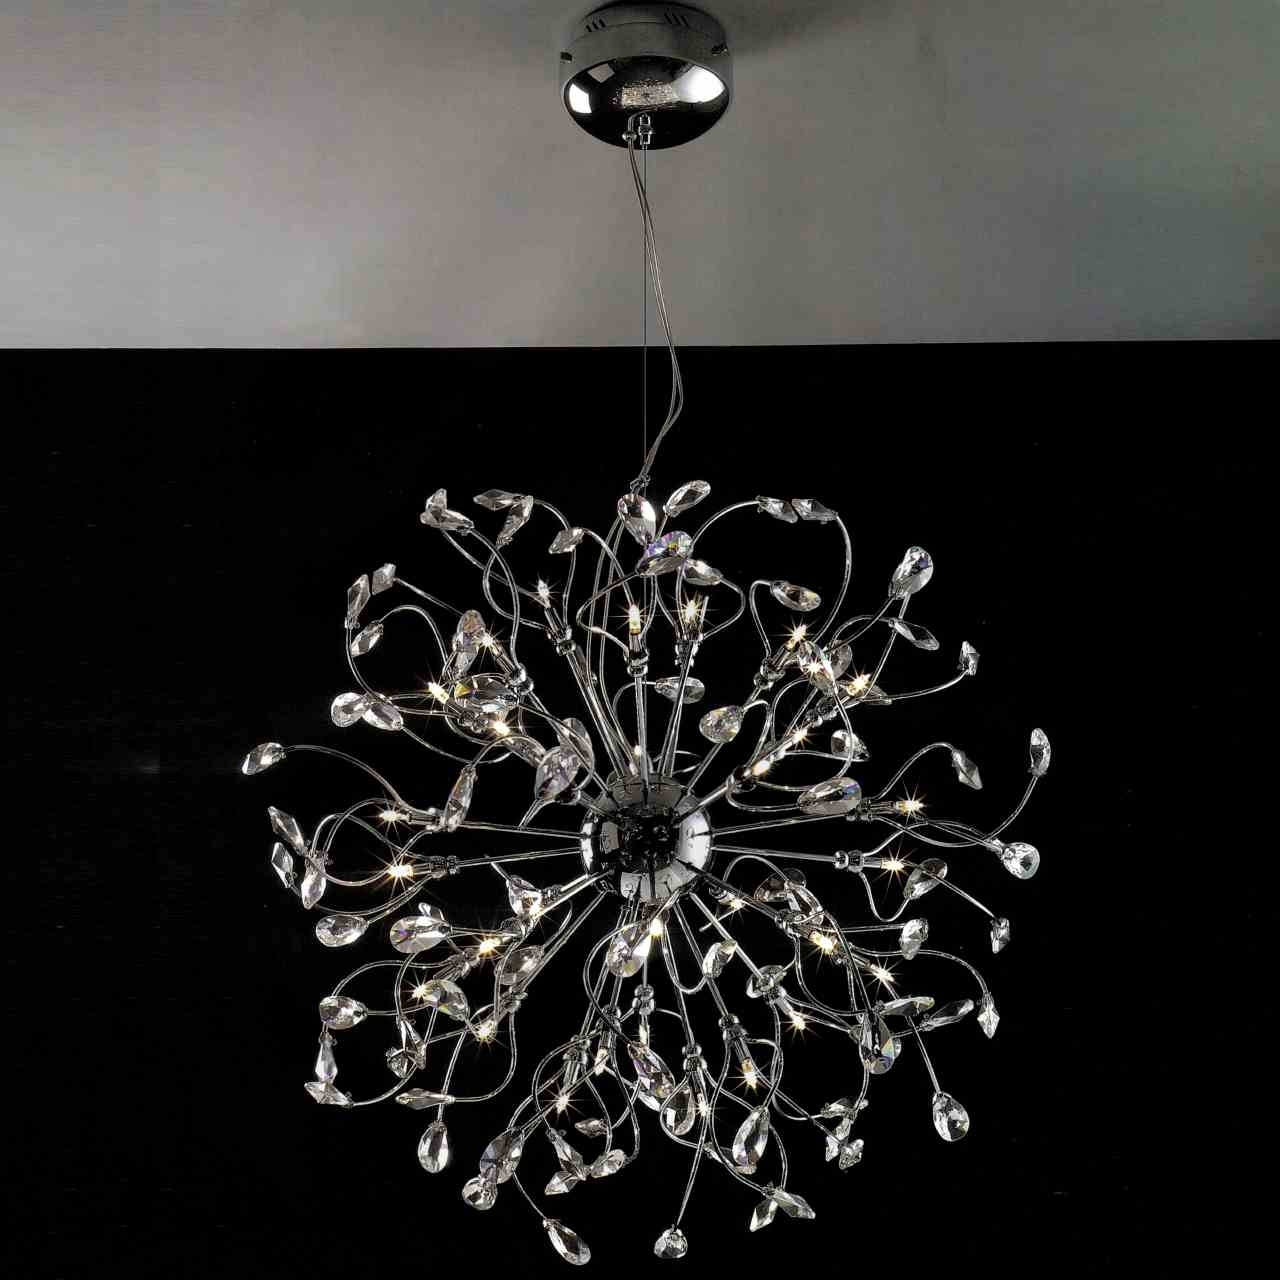 Crystal Chrome Chandeliers Within Most Up To Date Brizzo Lighting Stores (View 8 of 15)